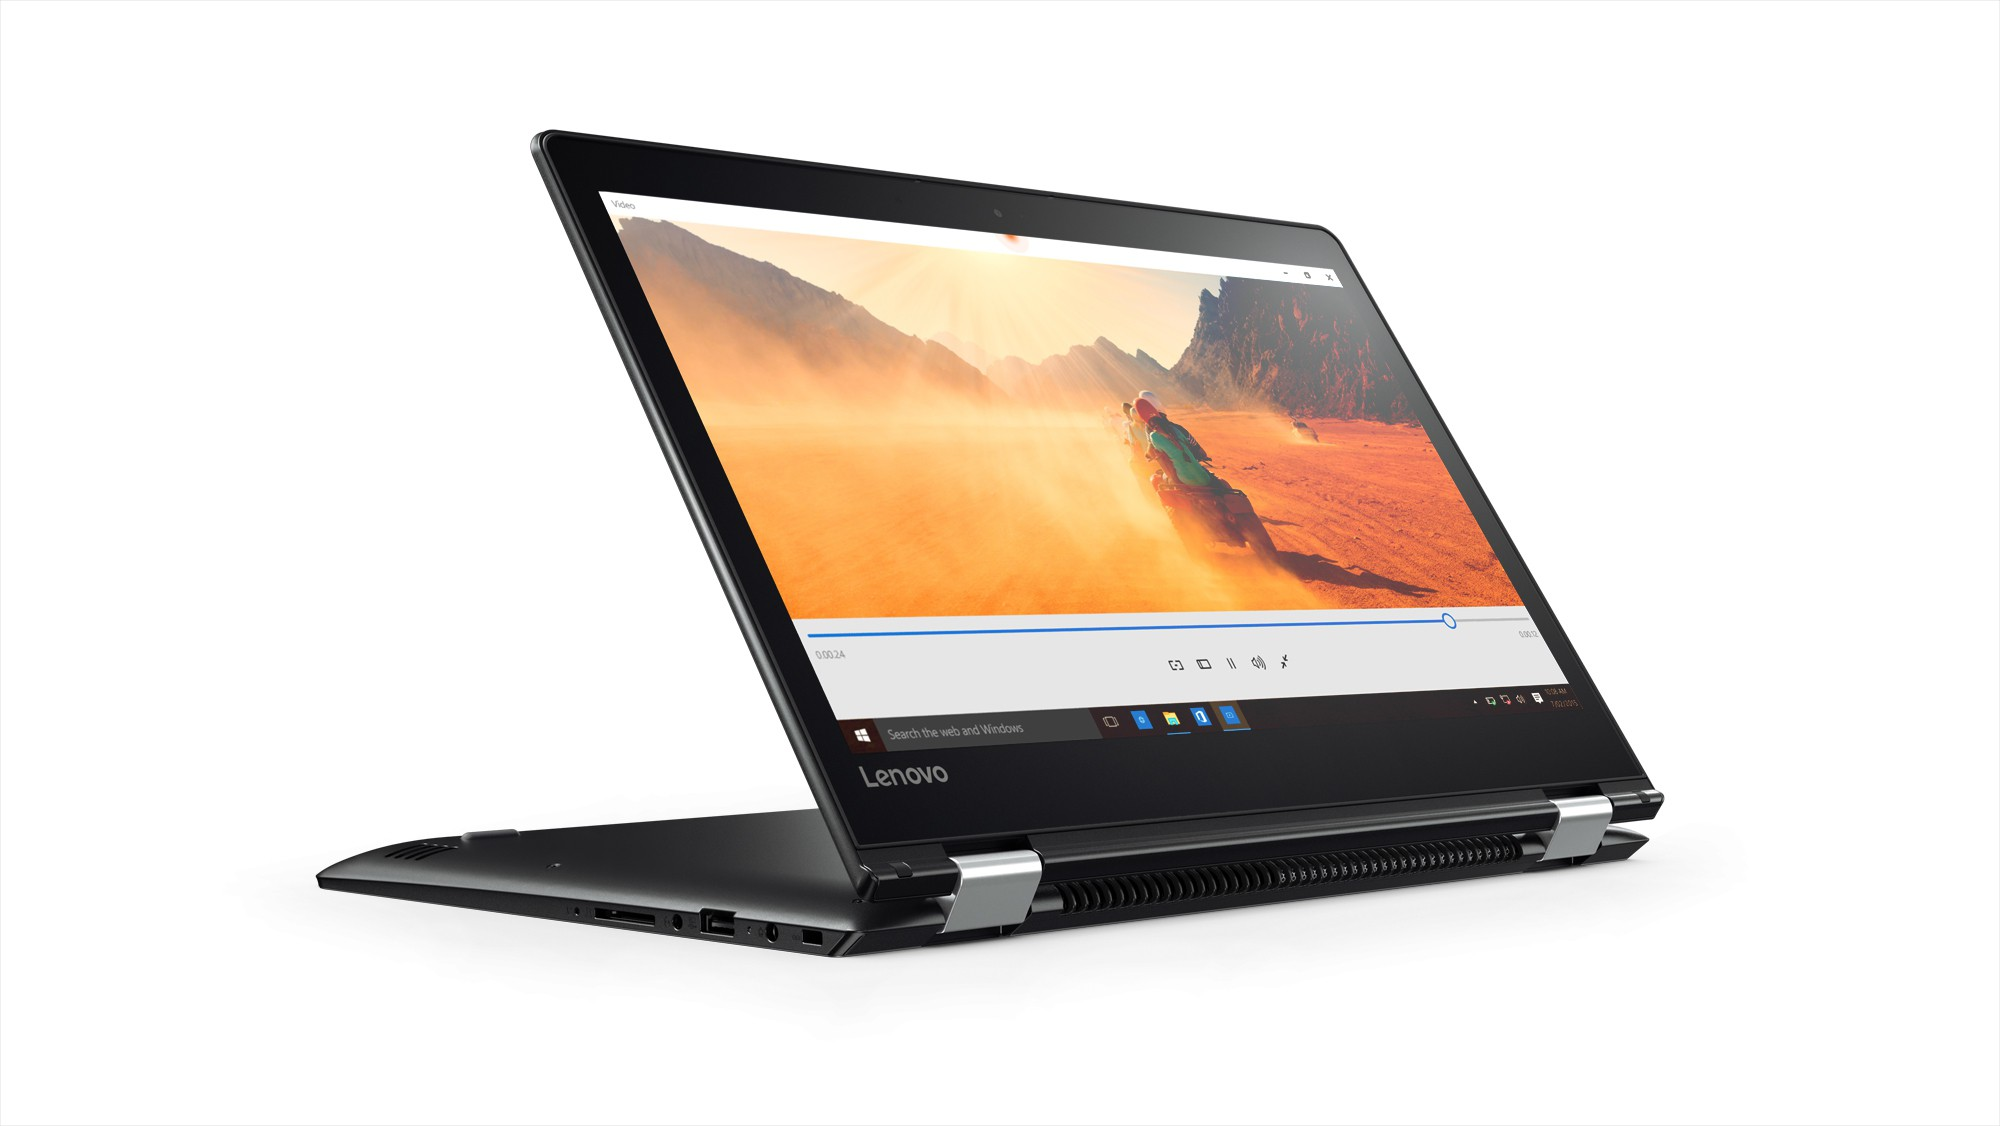 Lenovo Core i5 7th Gen - (8 GB/1 TB HDD/Windows 10 Home/2 GB Graphics) Yoga 510 2 in 1 Laptop(14 inch, Black, 1.73 kg)   Laptop  (Lenovo)